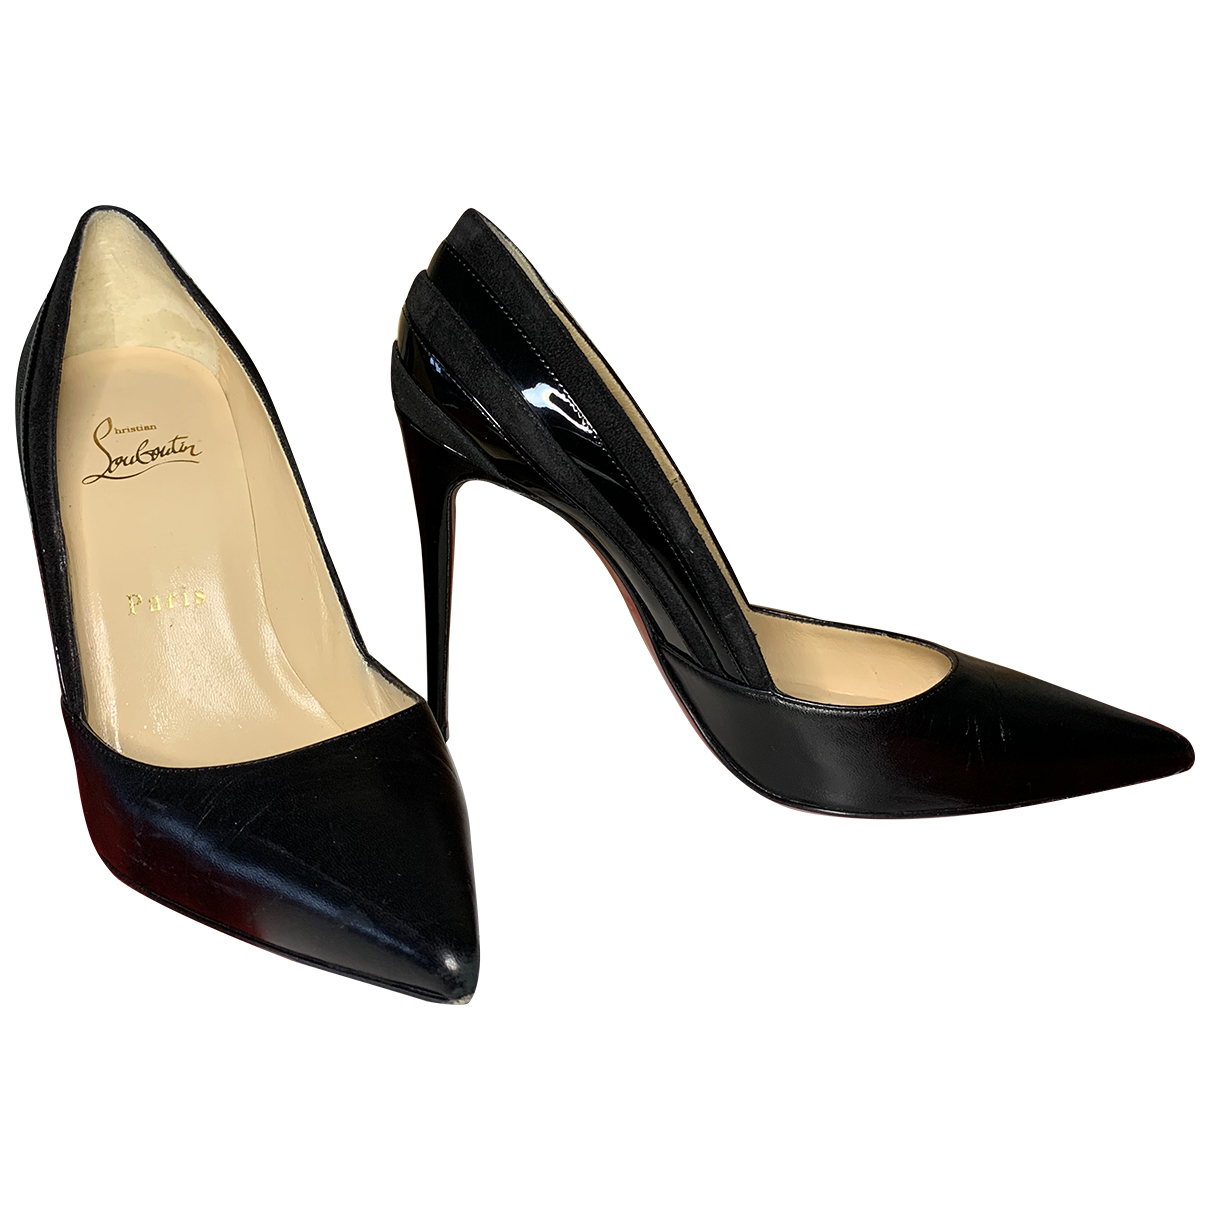 Christian Louboutin Pigalle Black Leather Heels for Women 37 EU